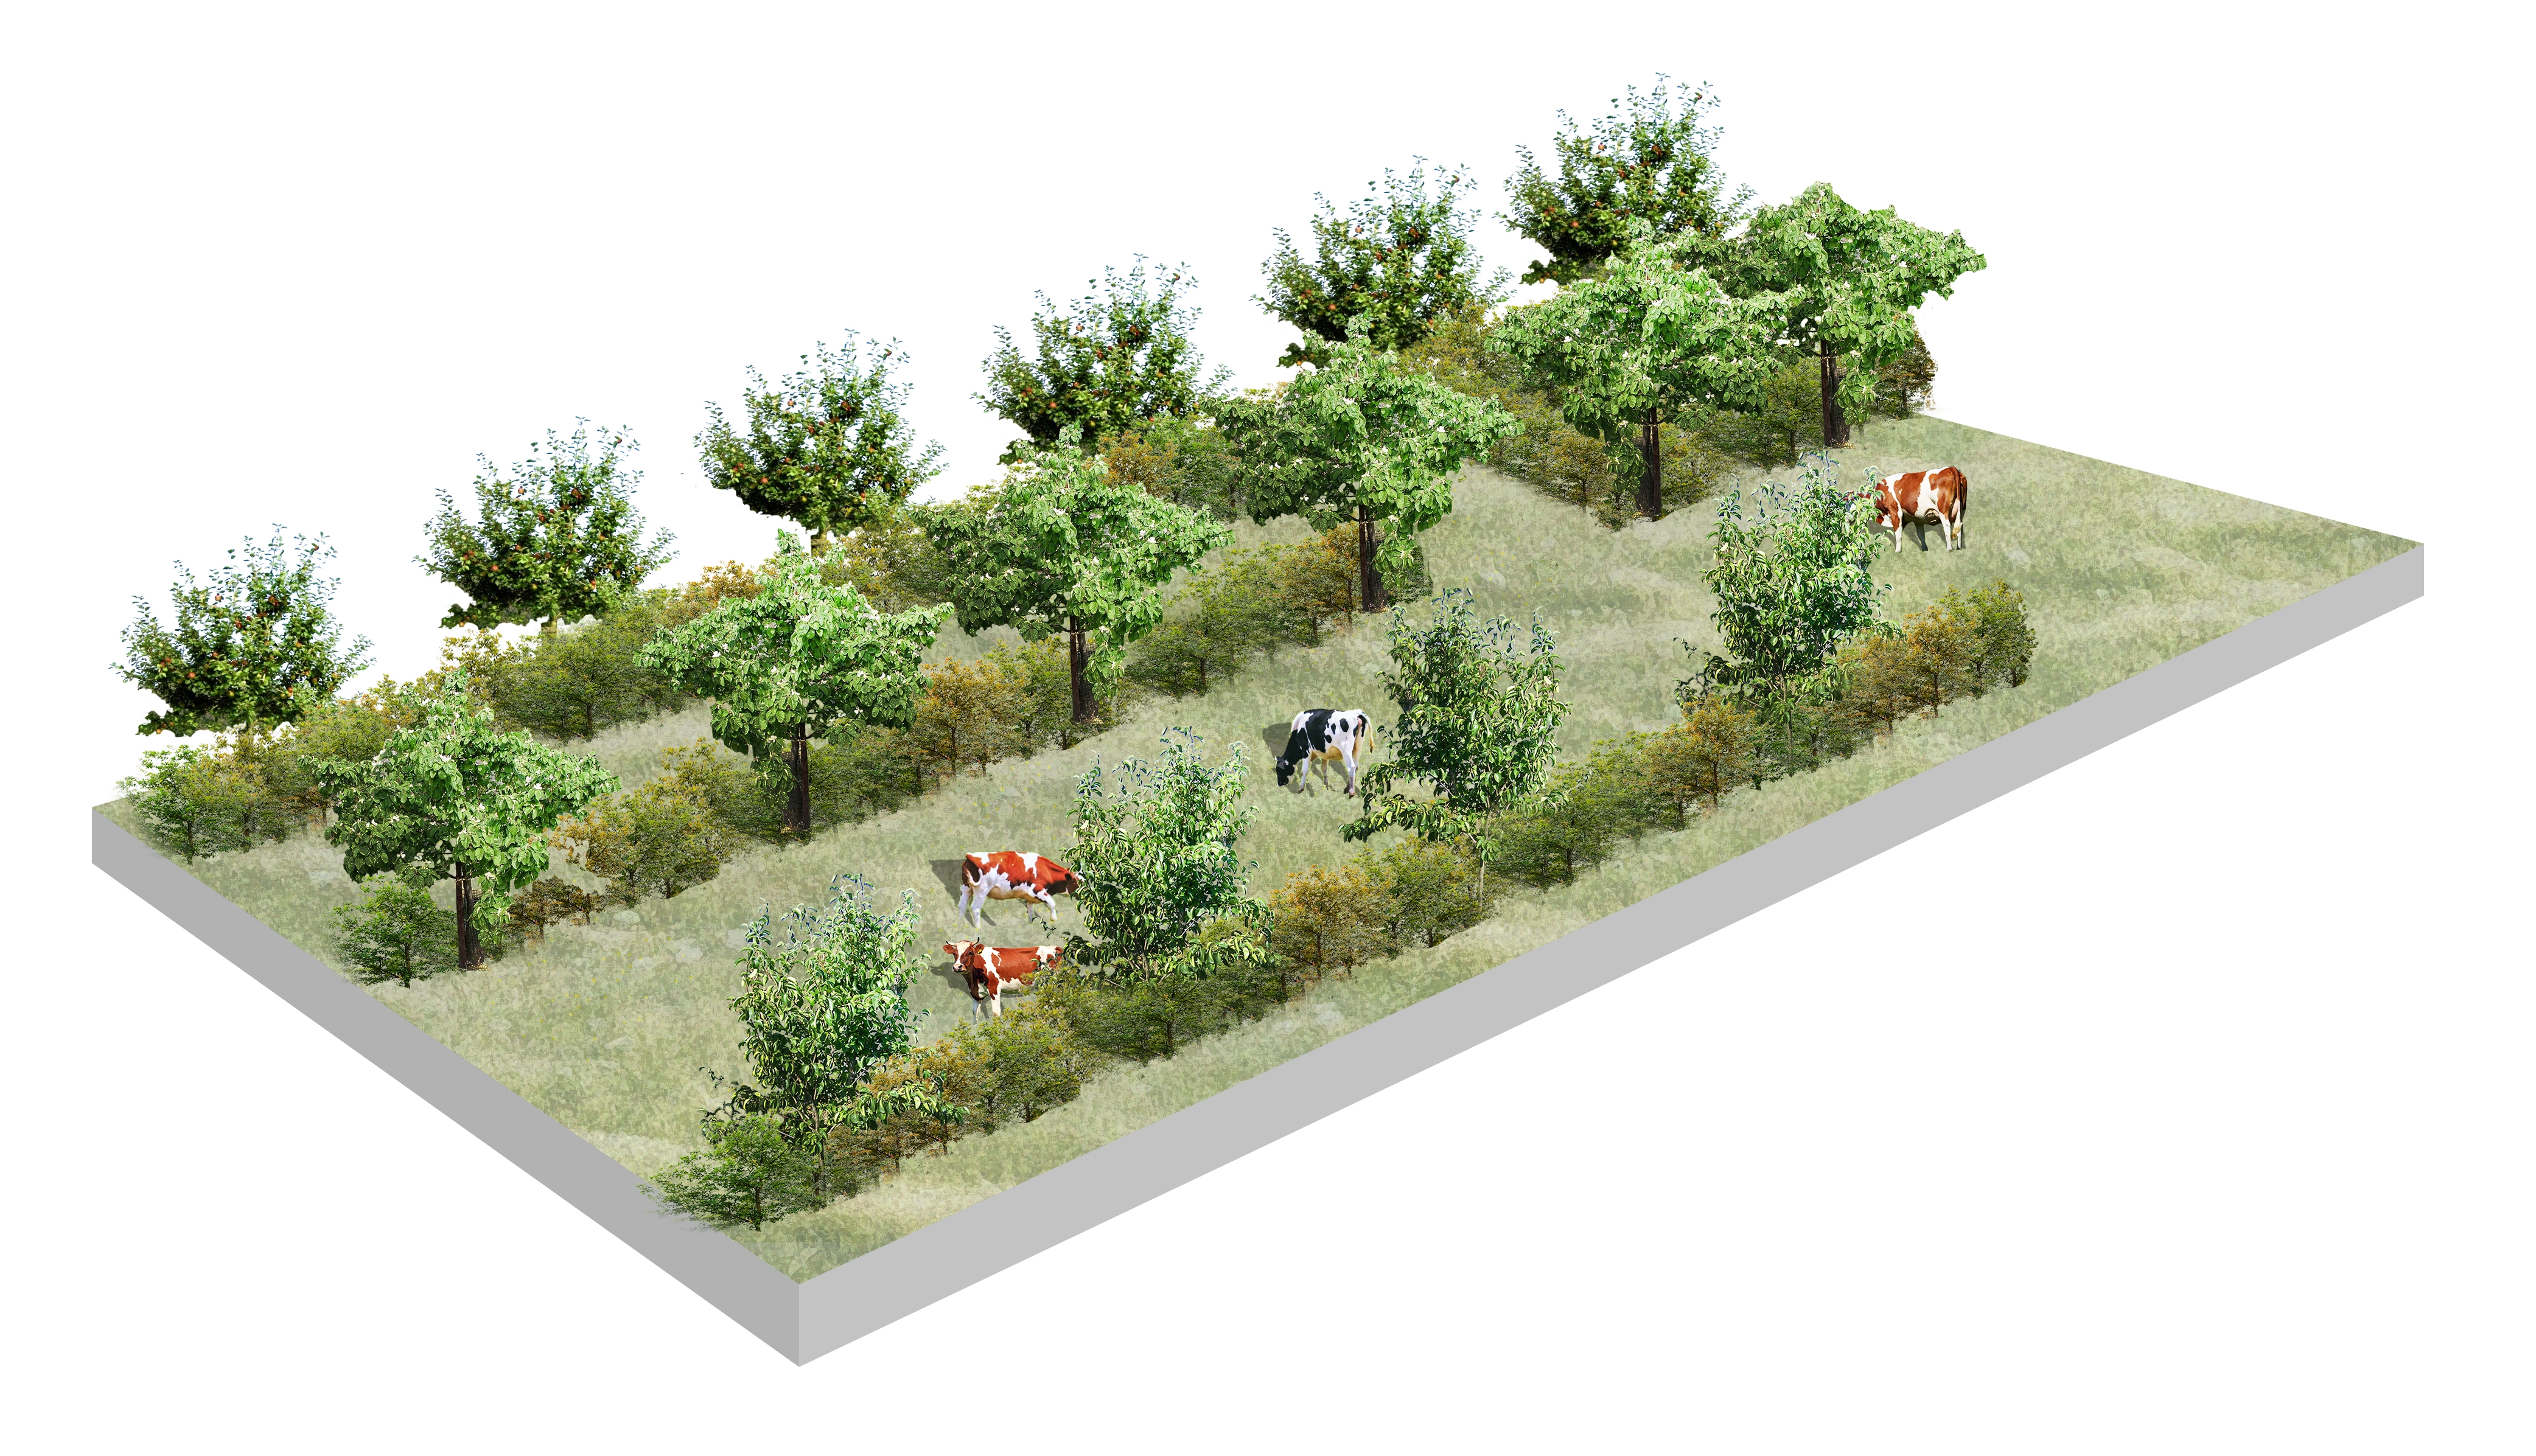 A visualisation of an orchard with multiple layers and cattle. ©Face Design Studio 2019